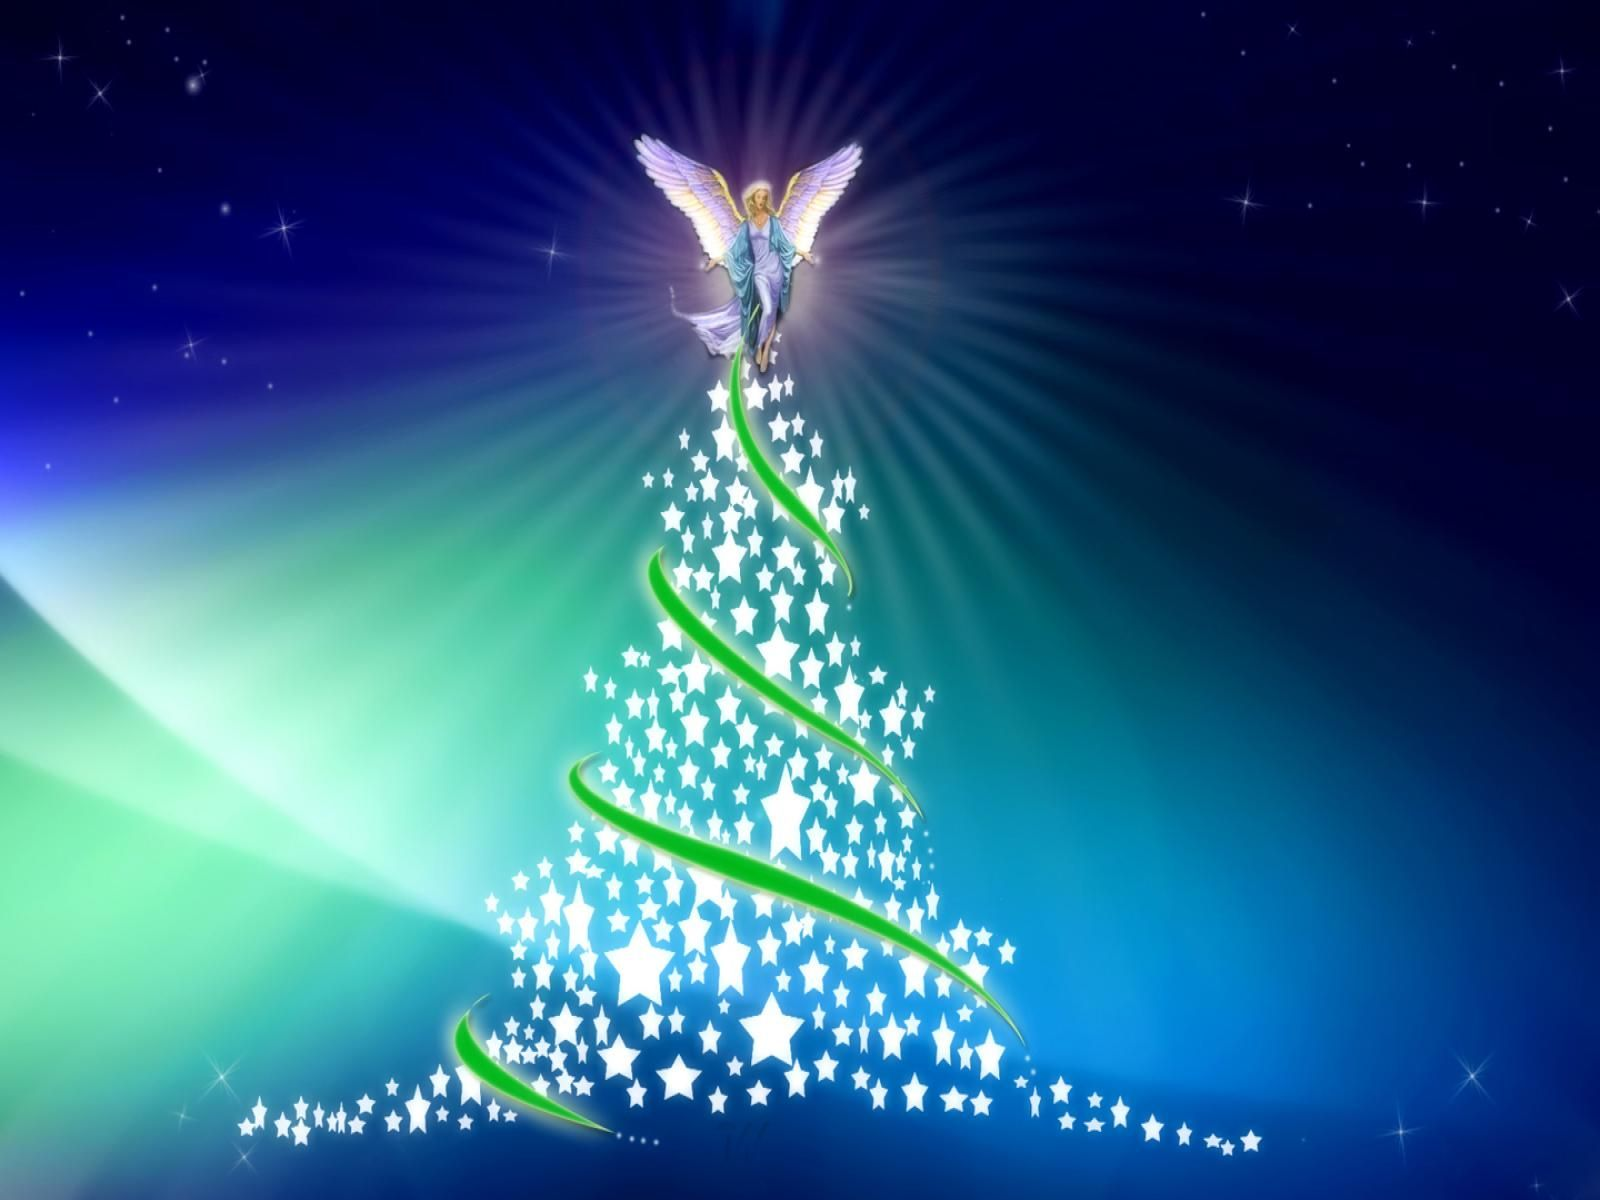 Fantasy Christmas Wallpaper Fantasy Christmas Angel